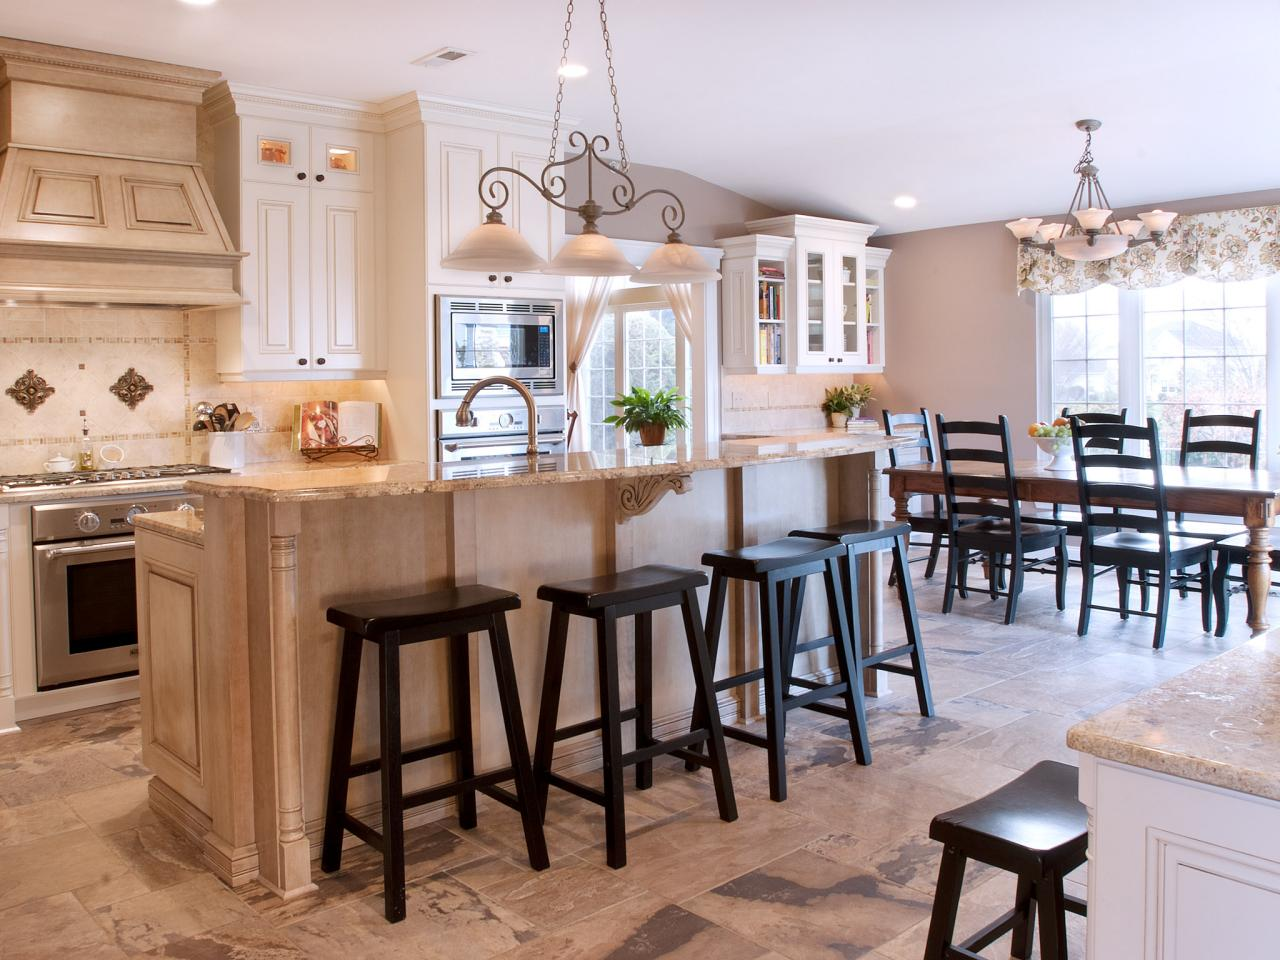 Photos hgtv for Kitchen dining area decorating ideas